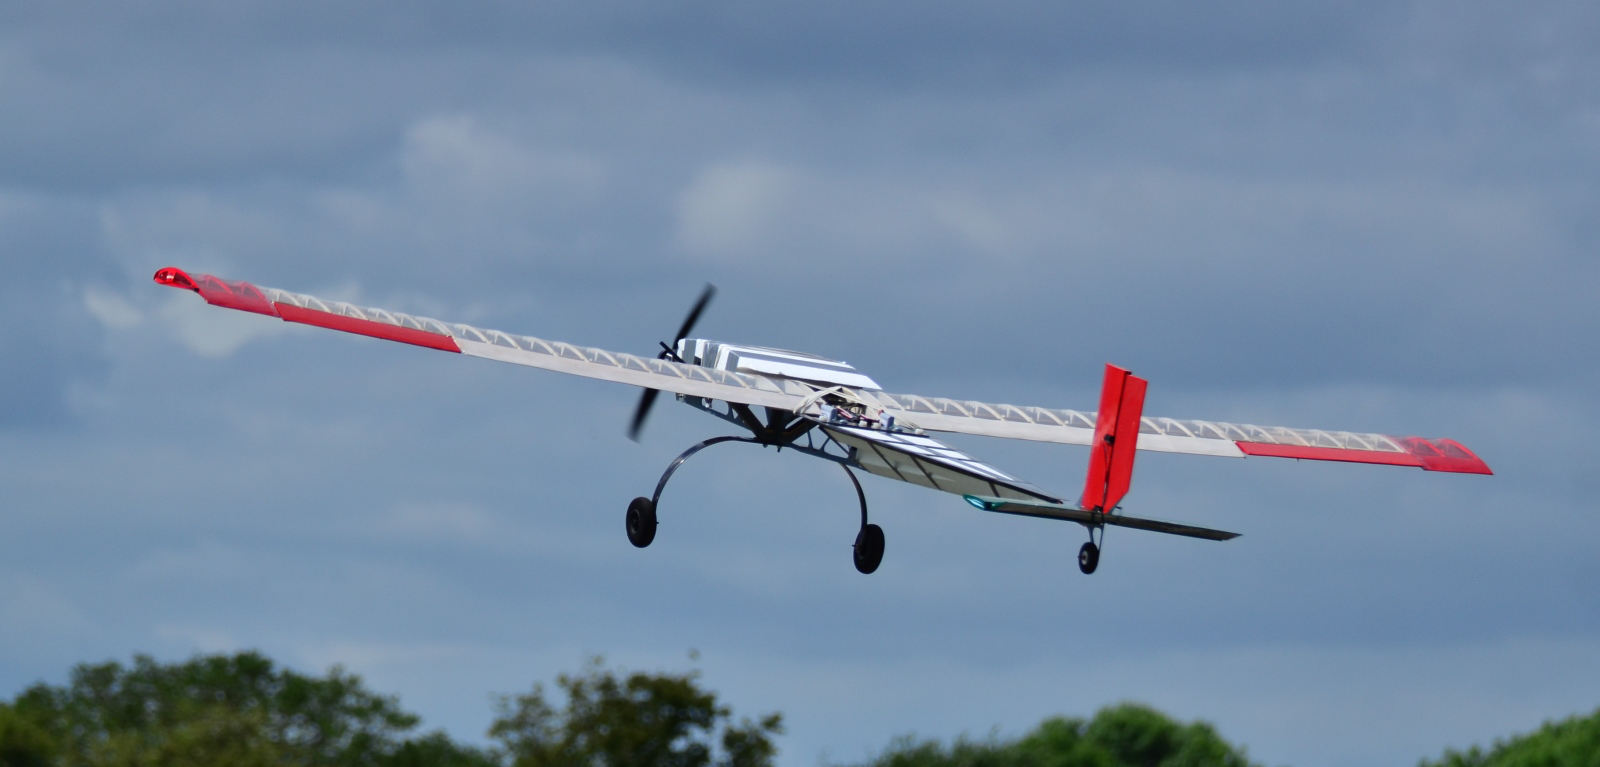 Flying model aircraft